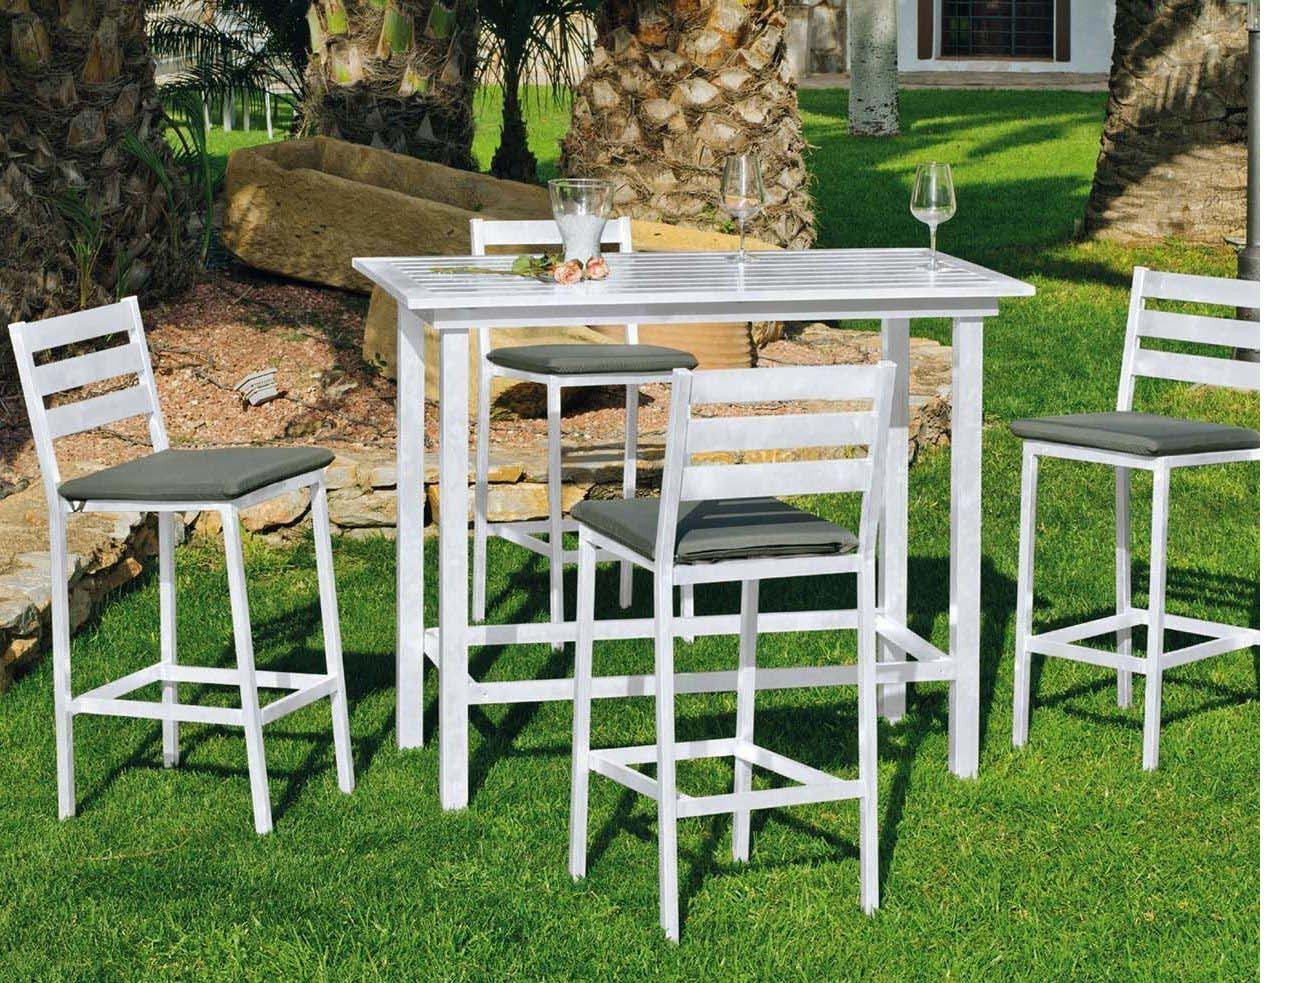 salon-de-jardin-aluminium-bar-table-chaises-hautes